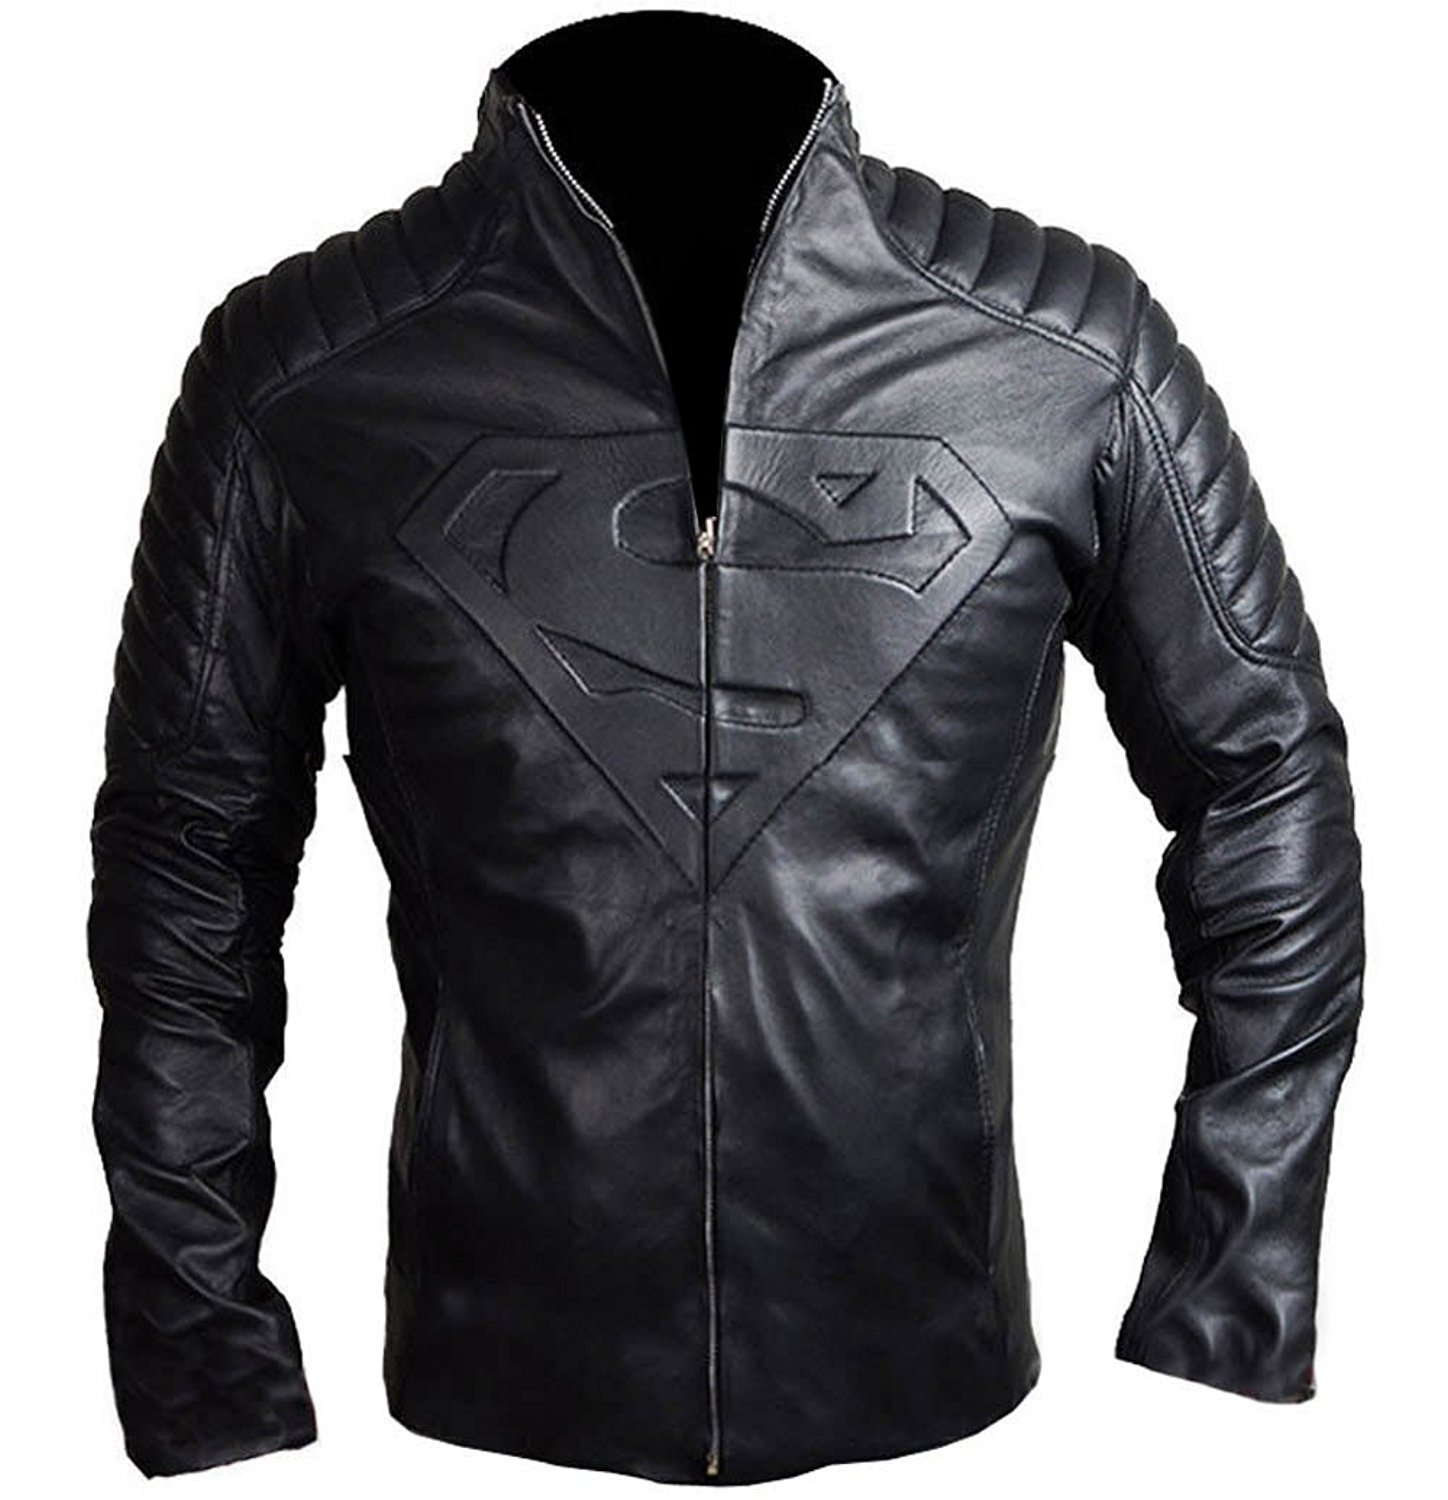 Spazeup Superman Smallville Black Quilted Motorcycle Faux Leather Jacket, Large by Spazeup